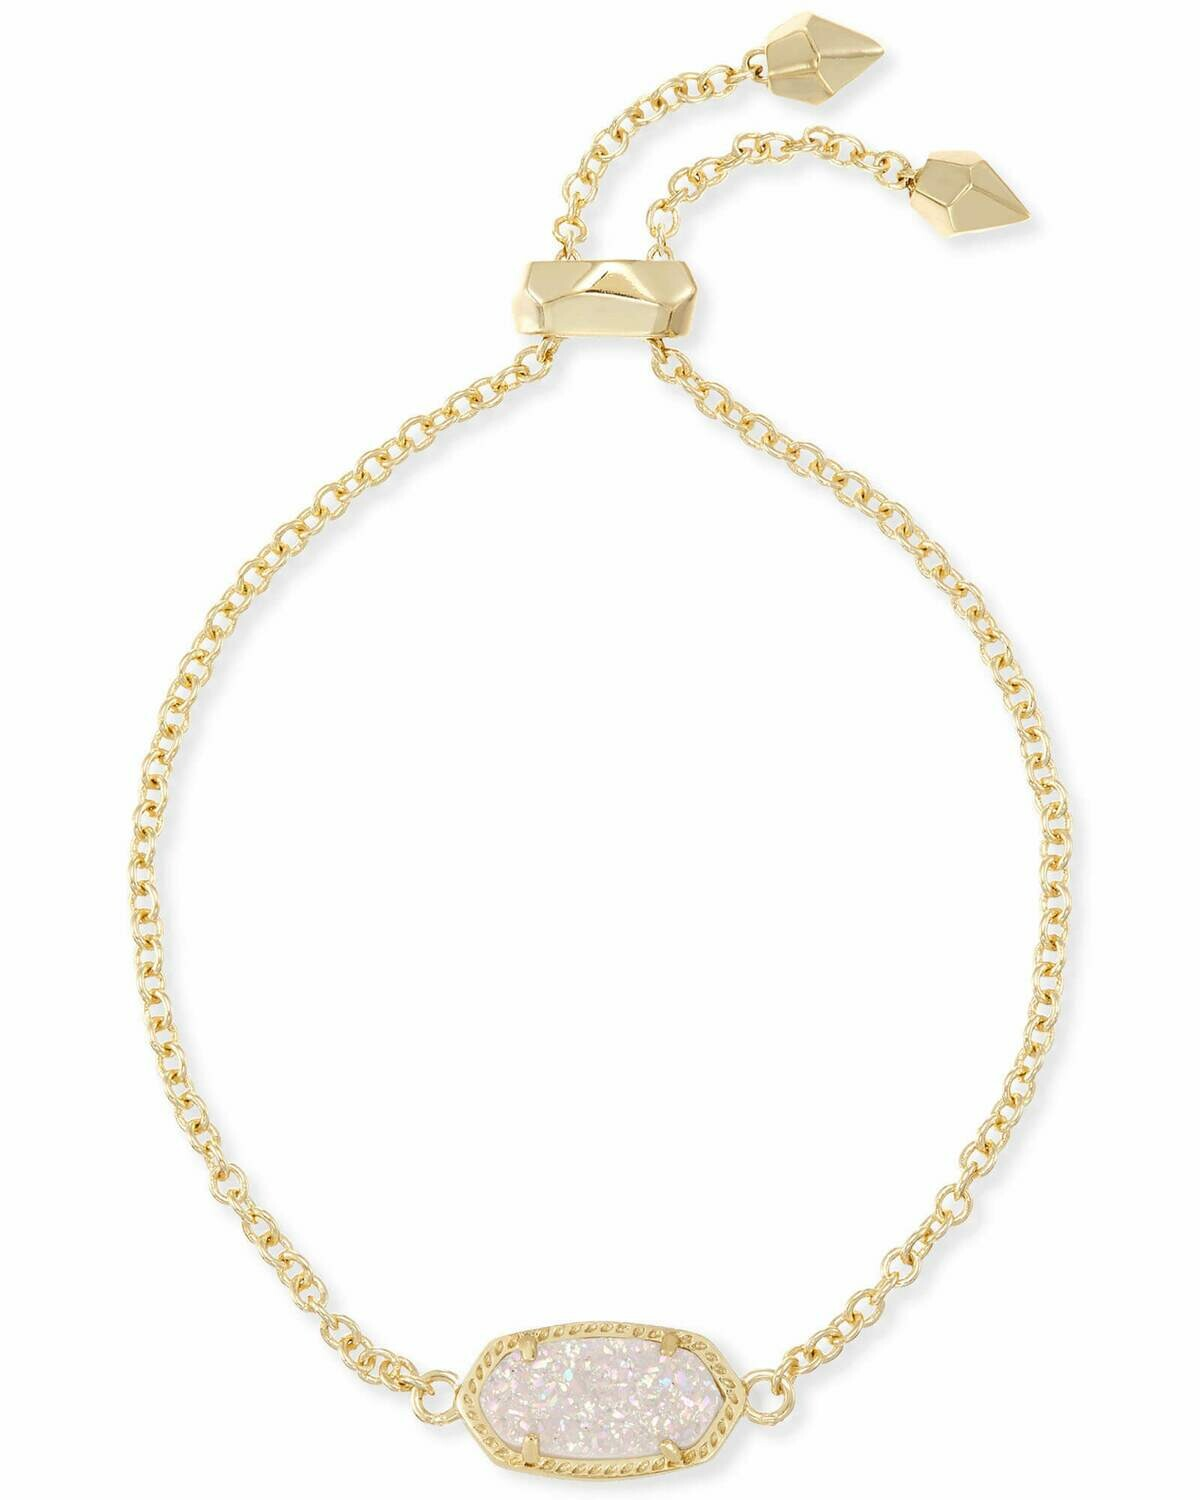 Kendra Scott Elaina Gold Adjustable Chain Bracelet In Iridescent Drusy